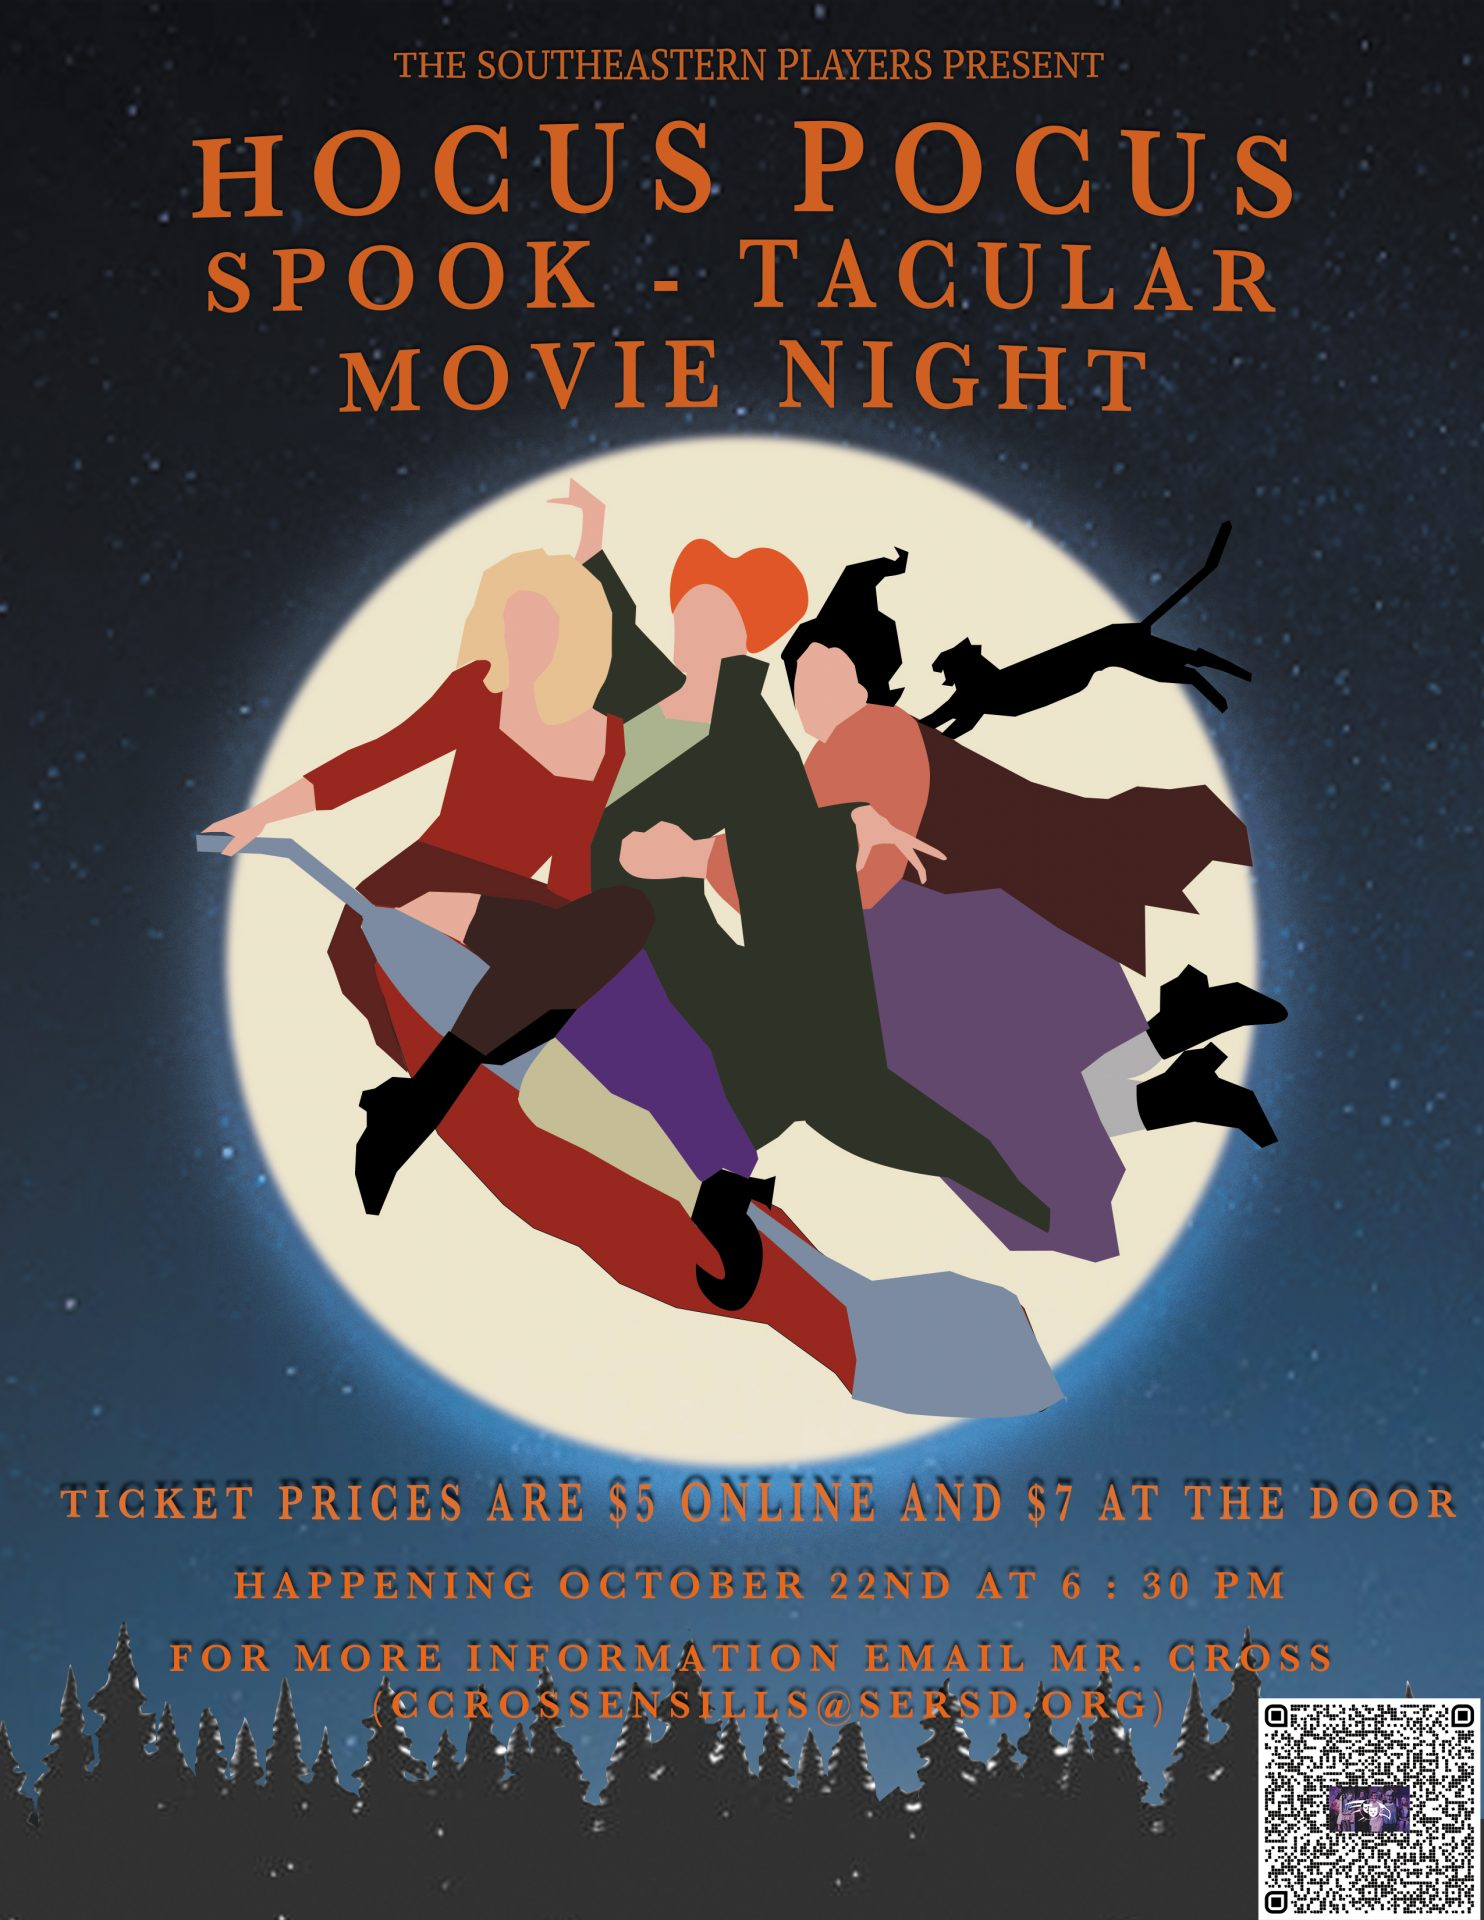 Kid Friendly Event – Southeastern Players presents HOCUS POCUS (A Family Friendly Halloween Movie Night)